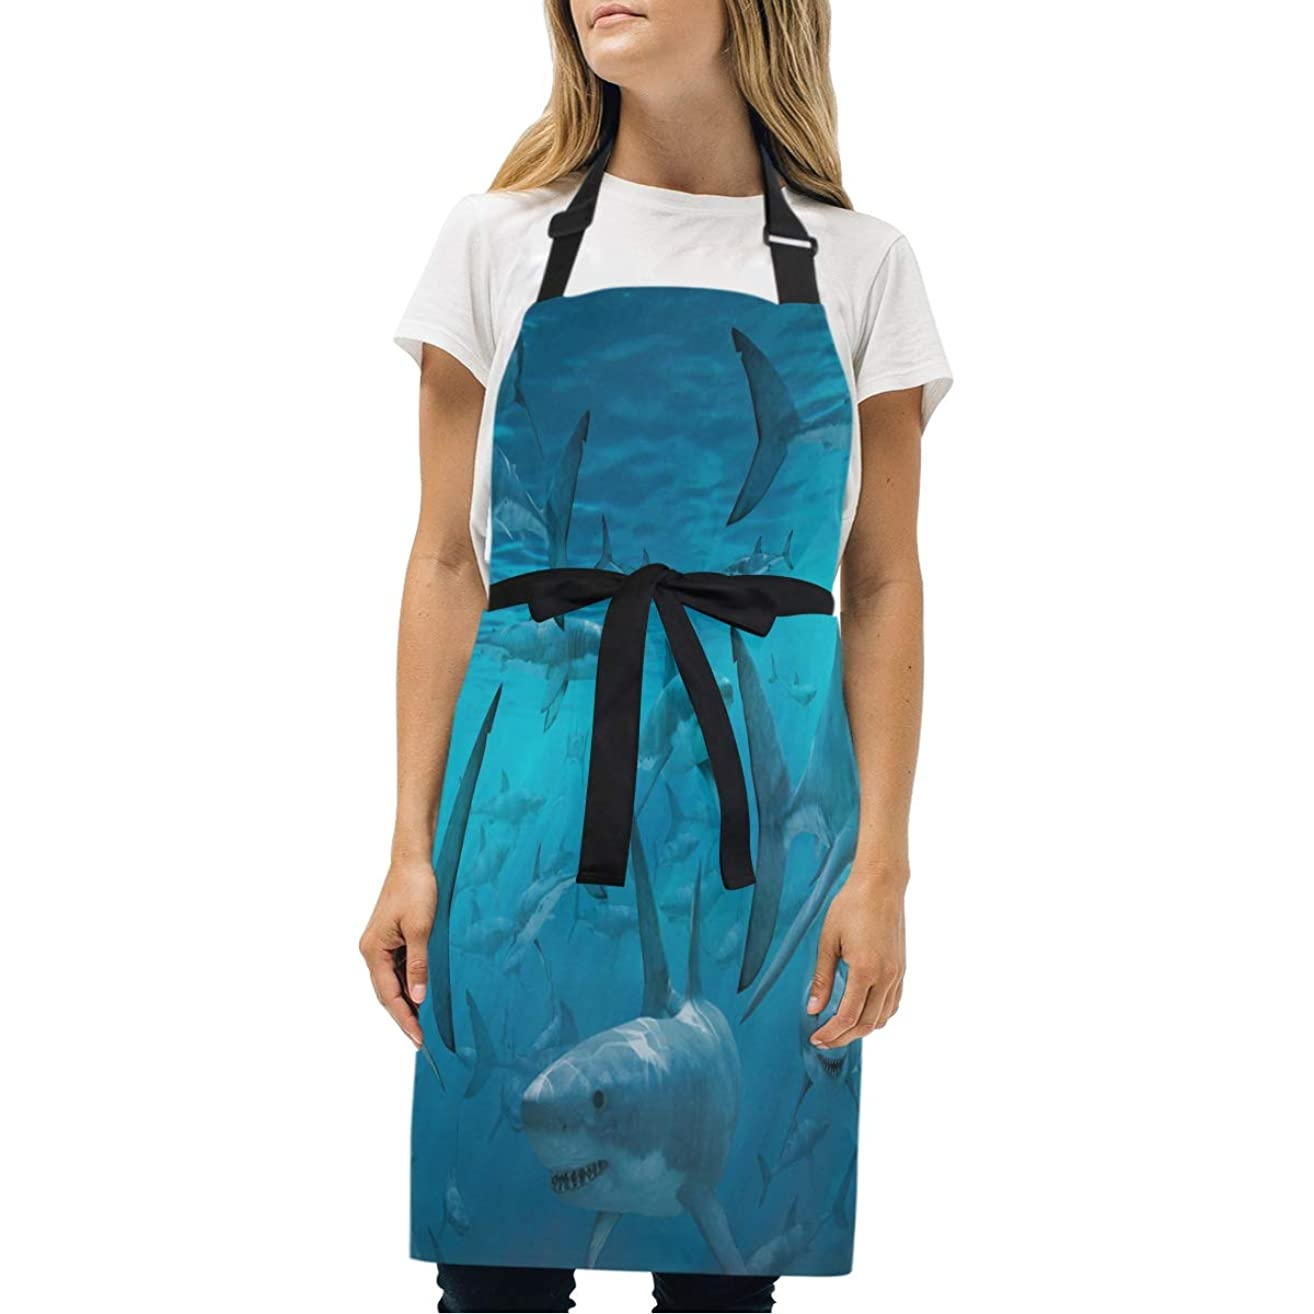 HJudge Womens Aprons Sharks are Kitchen Bib Aprons with Pockets Adjustable Buckle on Neck